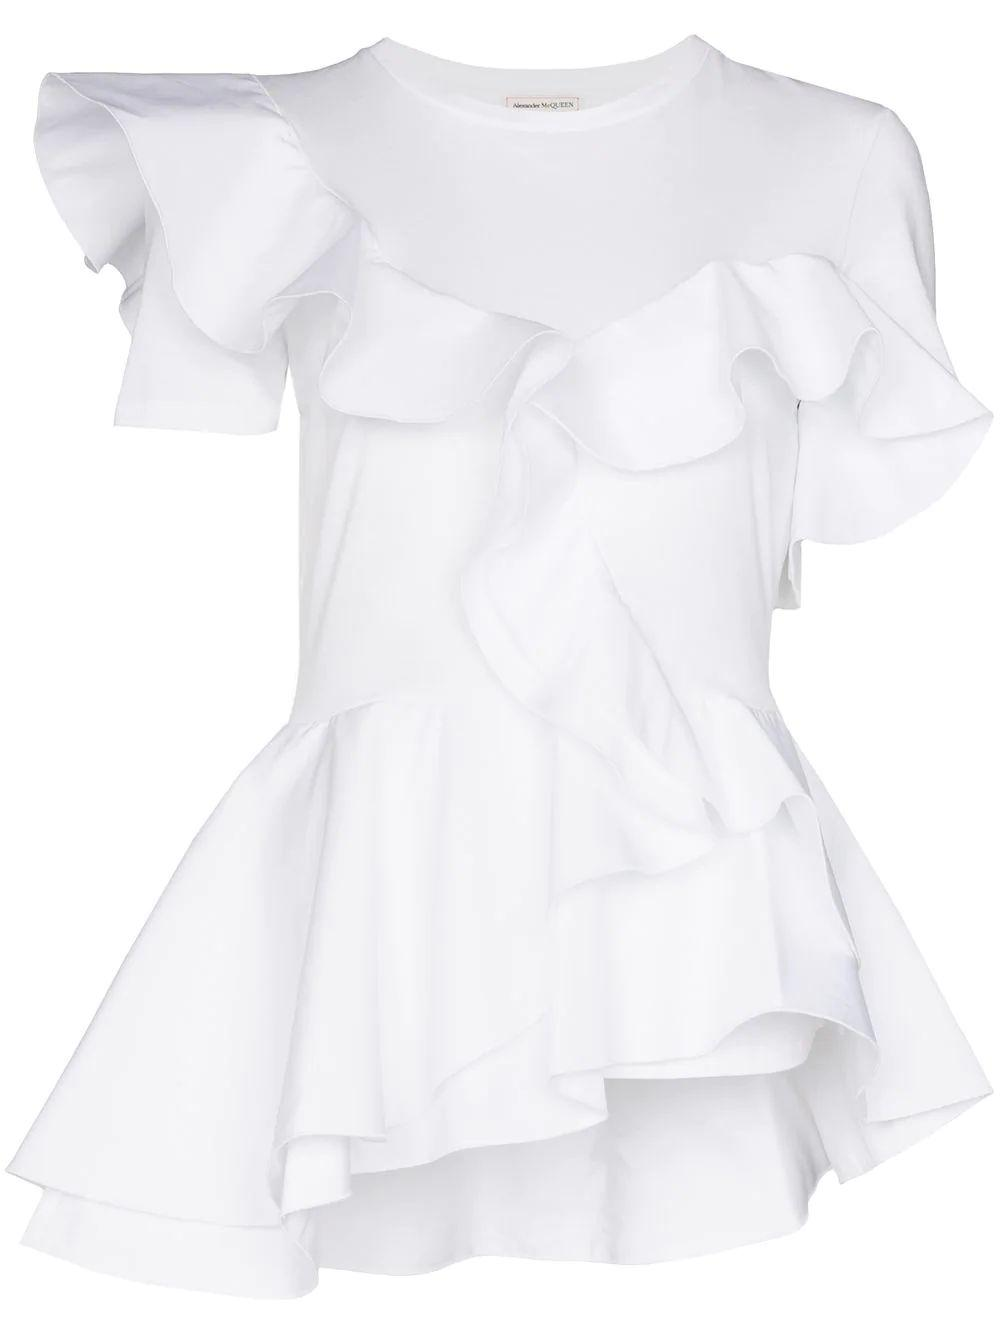 Short Sleeve Cotton Tee With Ruffle Detailing